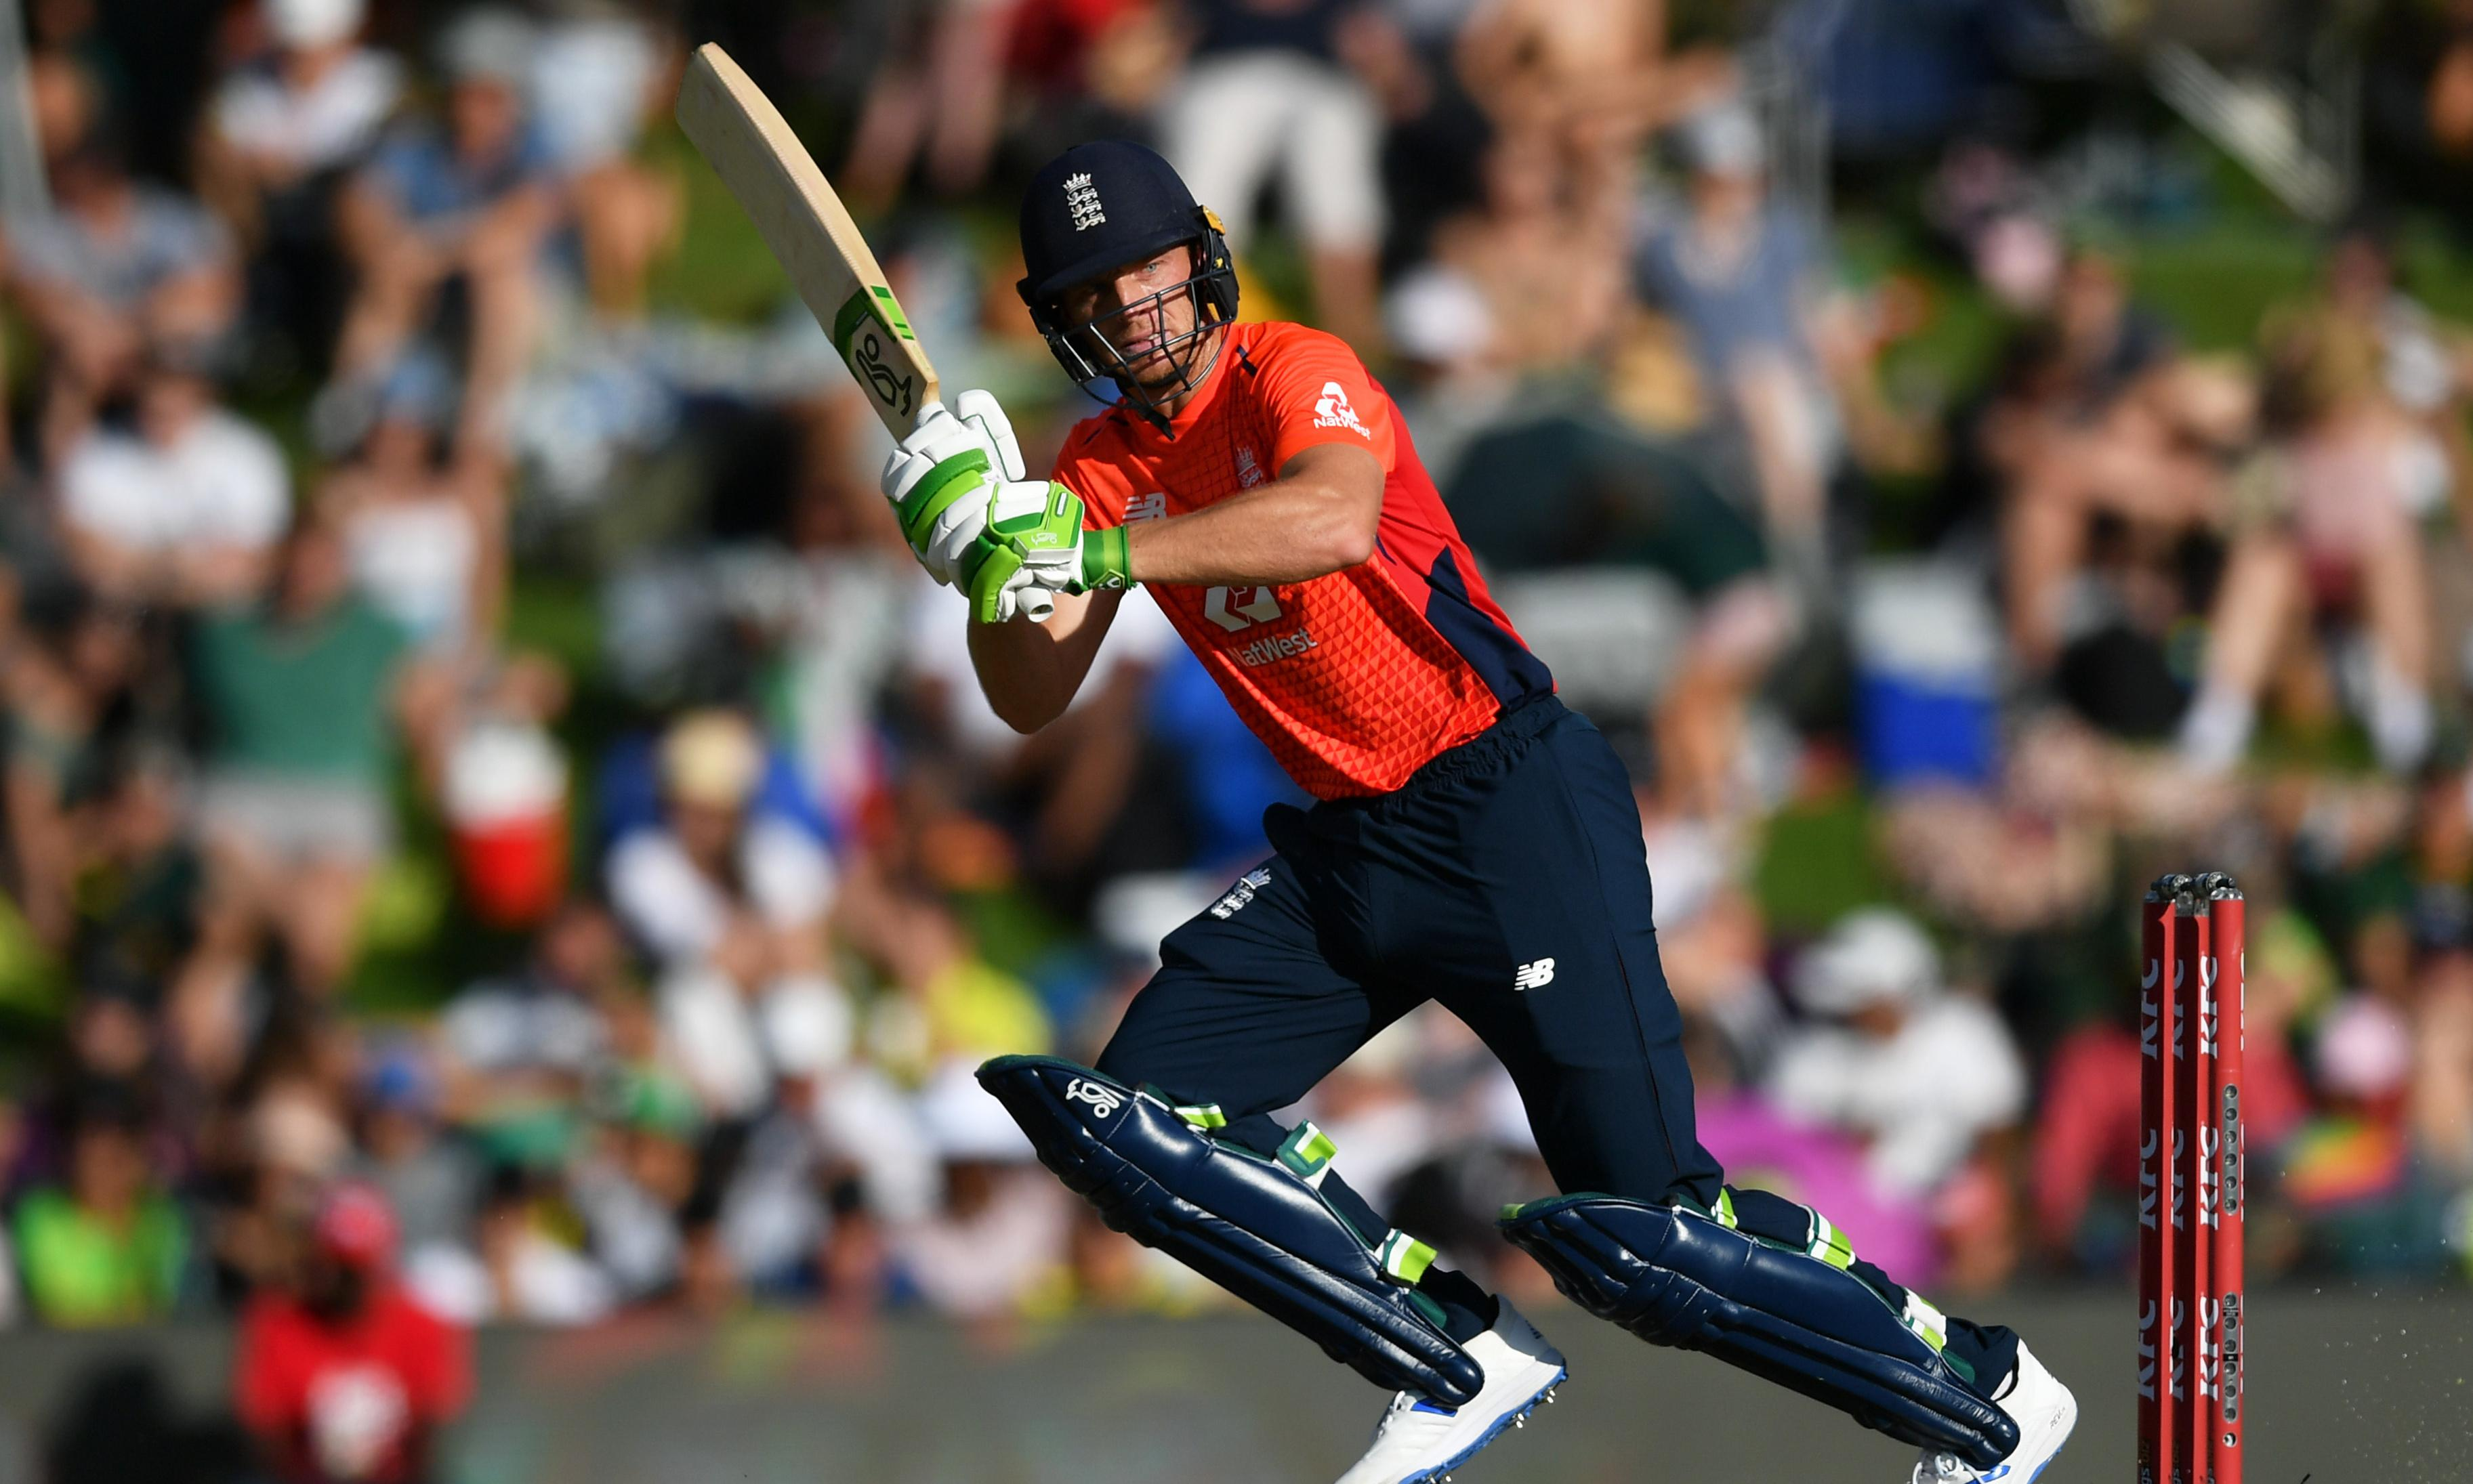 Jos Buttler eager to 'repay some faith' after Test struggles for England